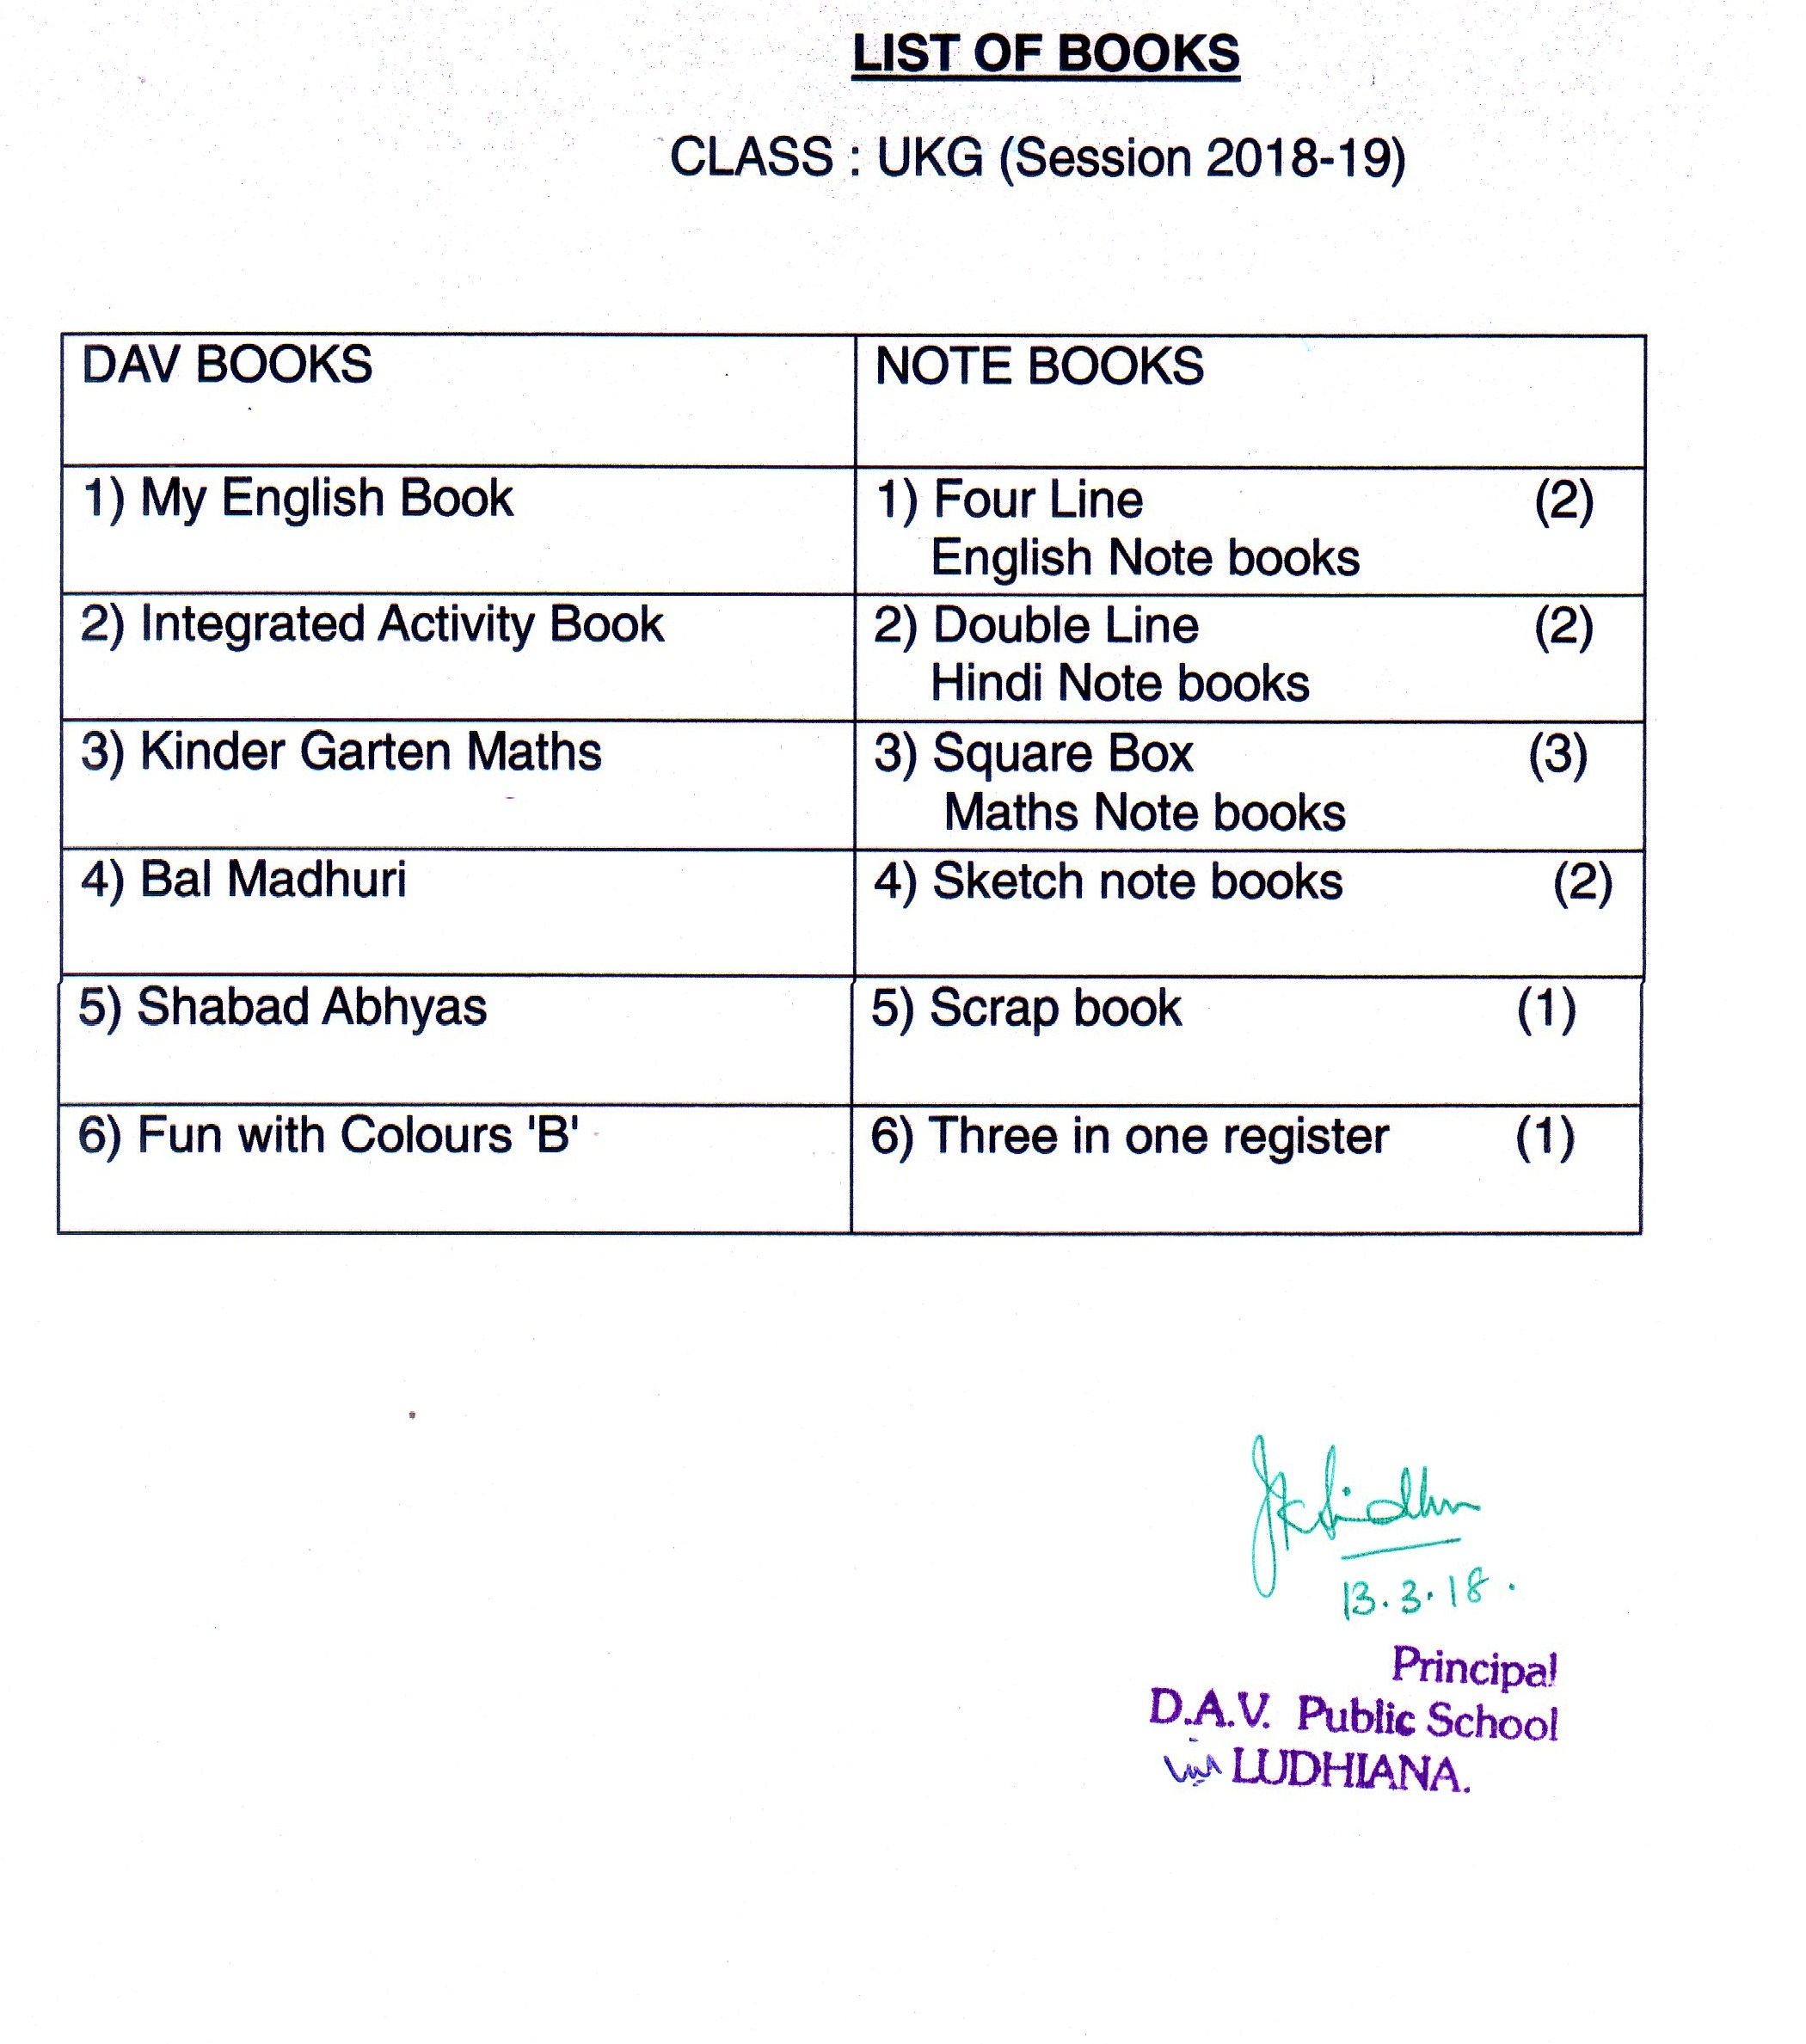 List of Books 2018-19